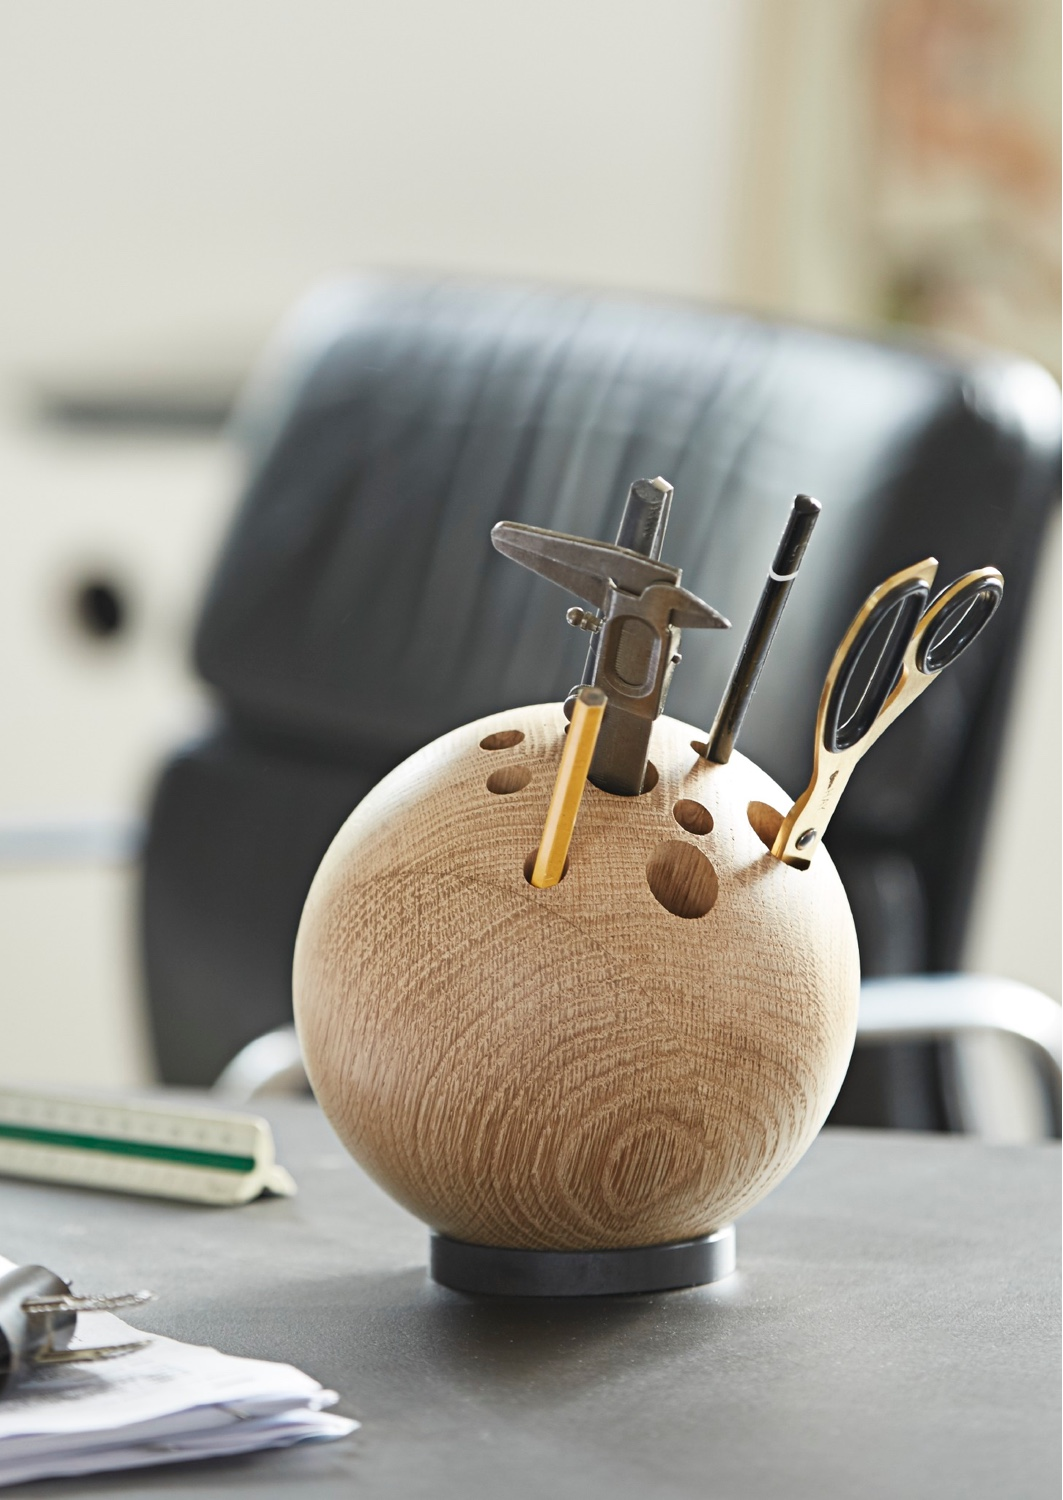 Lebowski by Danish cabinetmakers The Oak Men is perfect as a desk tidy or a decorative vase. Image © the_oak_men.